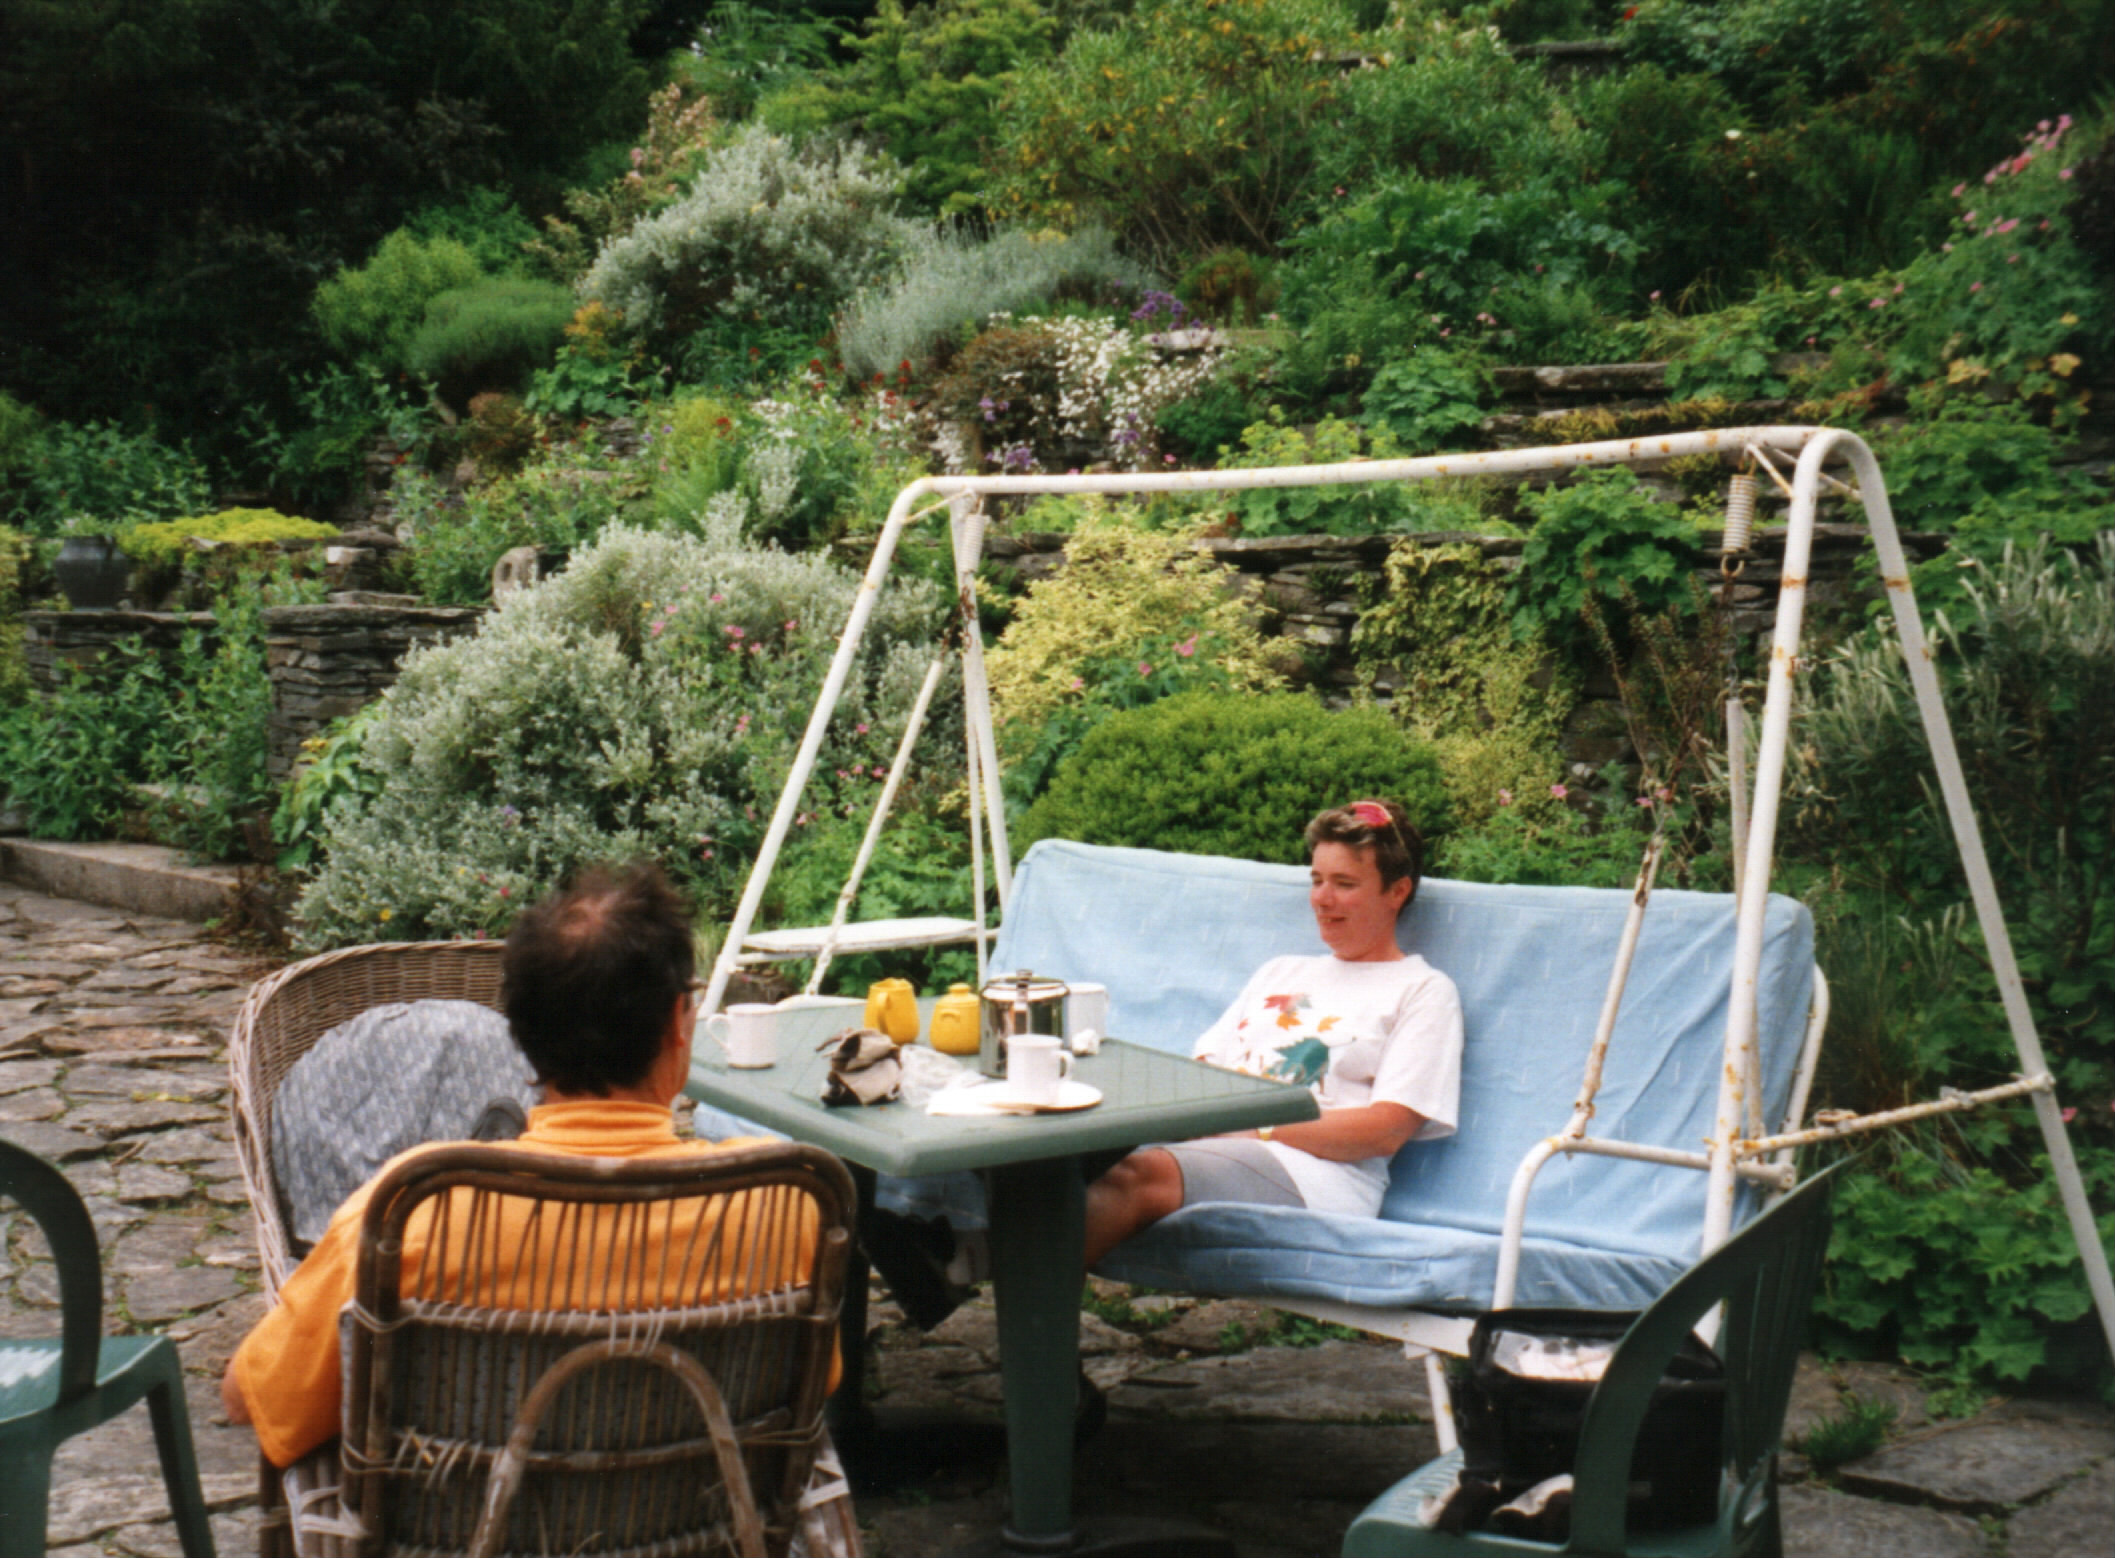 An idyllic looking scene in the garden of Colonsay House, but there were midges about...